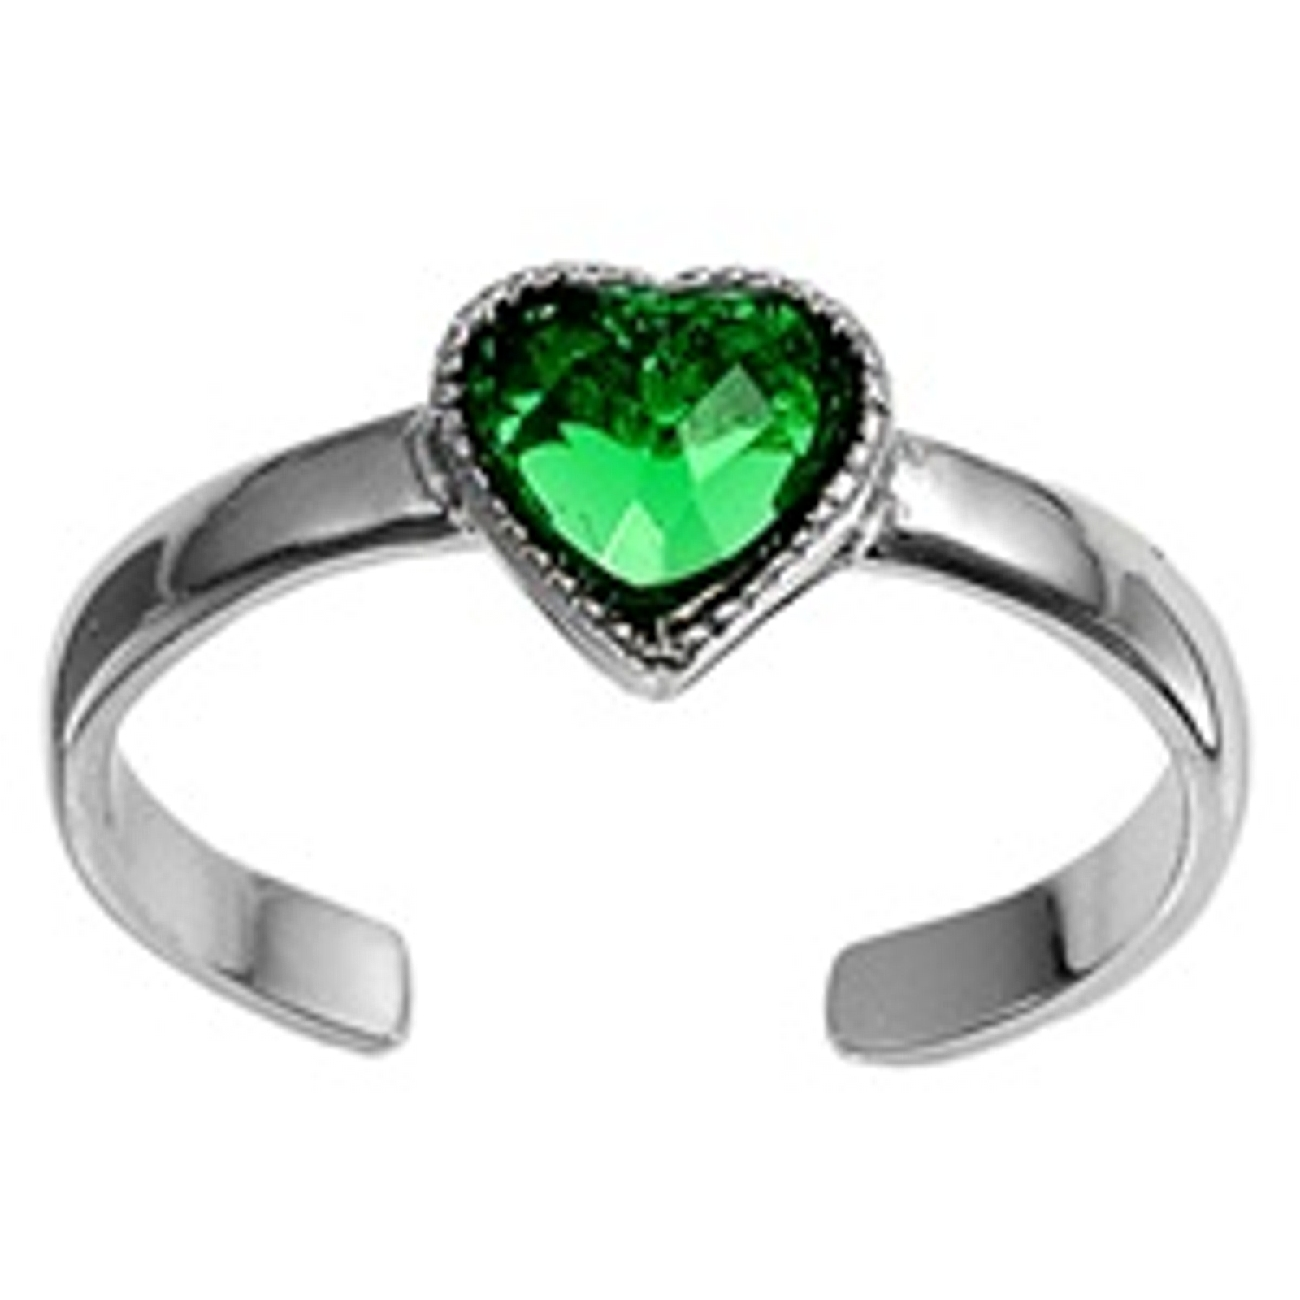 Green Cubic Zirconia Heart Adjustable Toe Ring